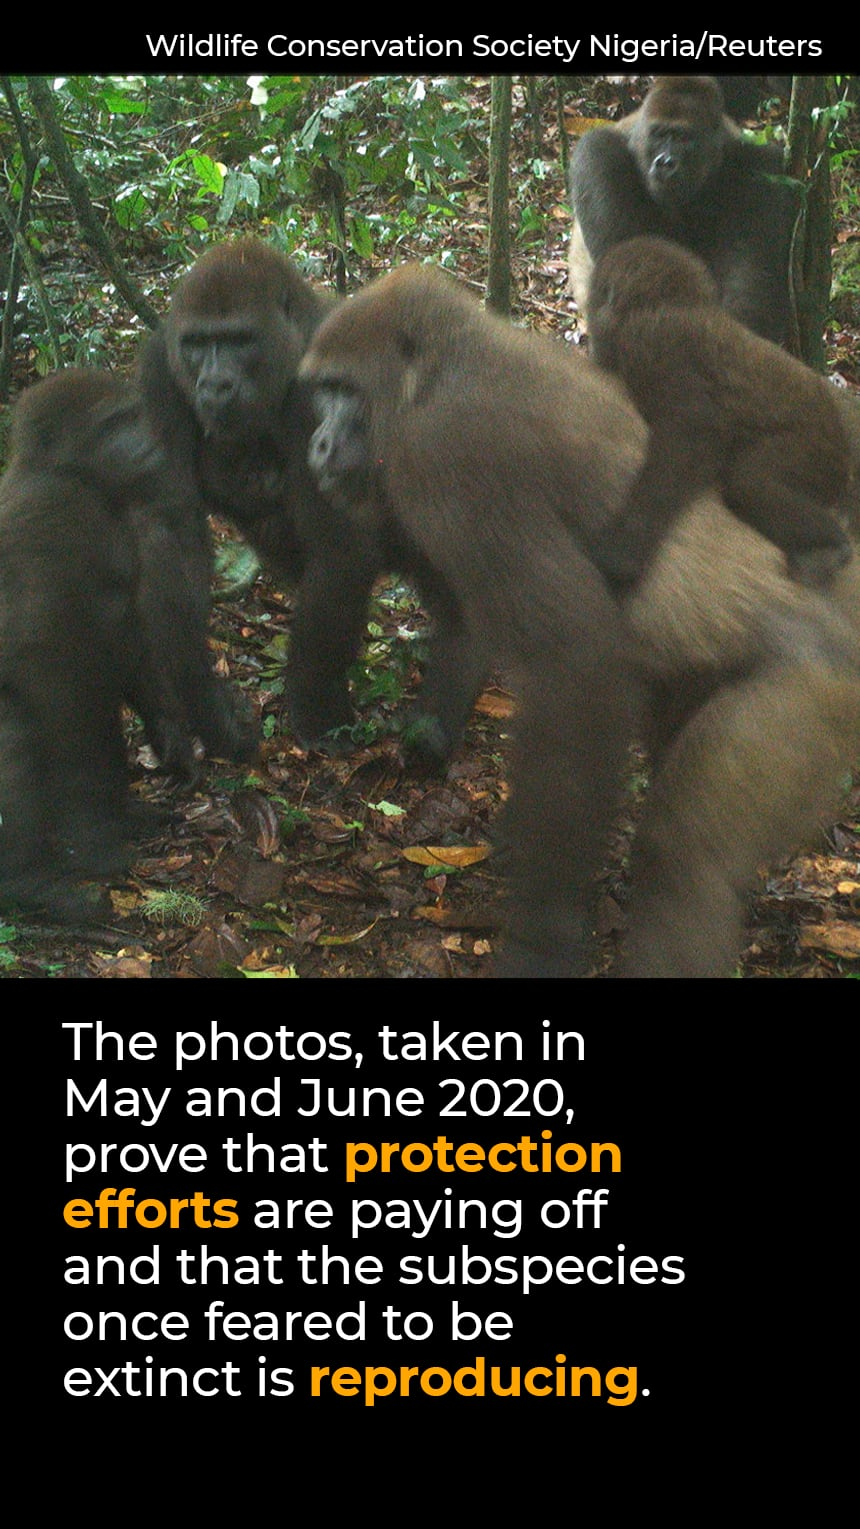 TEXT: The photos, taken in May 2020, prove that protection efforts are paying off and that the subspecies once feared to be extinct is reproducing. IMAGE: Gorillas and babies